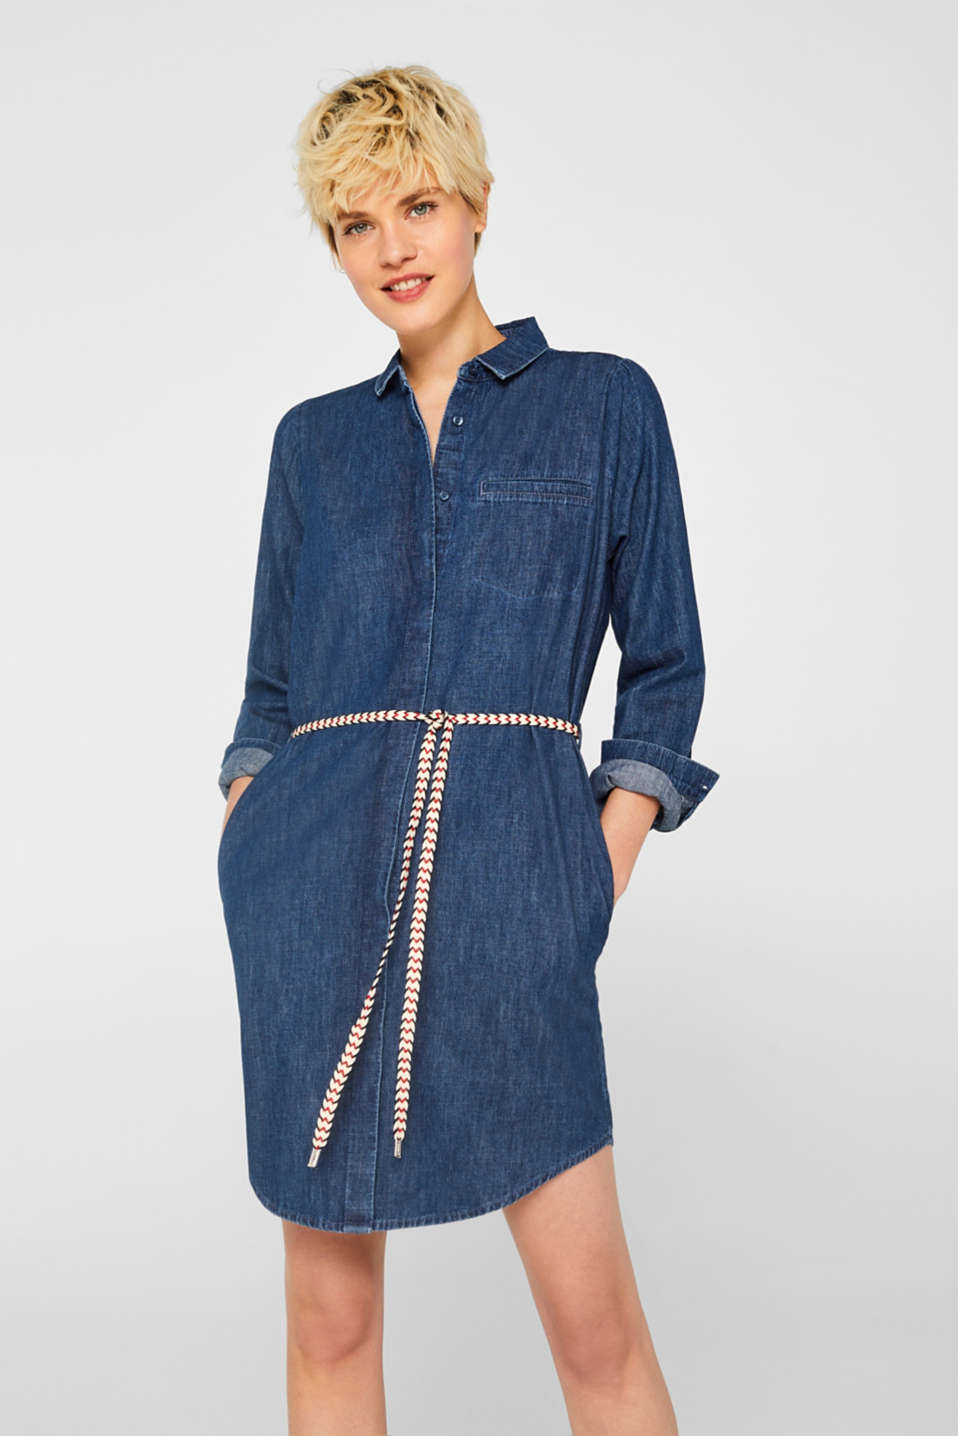 Esprit - Denim shirt dress with braided belt